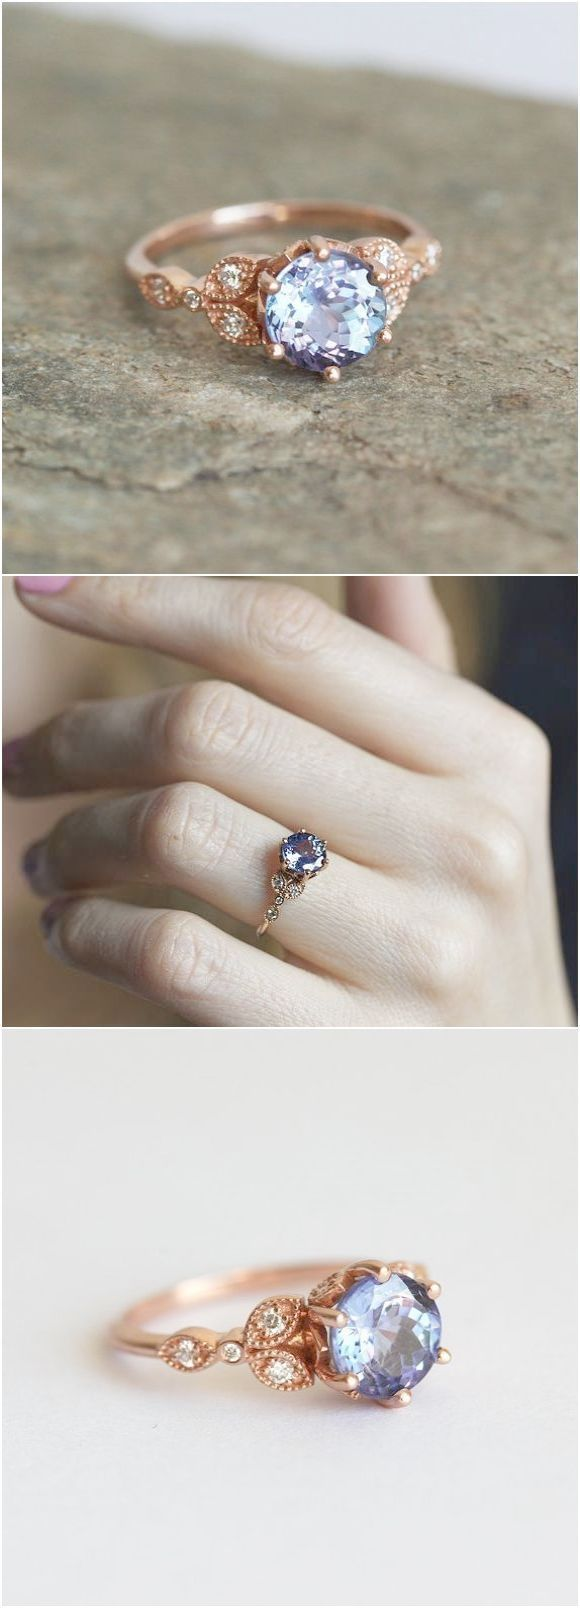 Berricle Rhodium Plated Sterling Silver Cubic Zirconia Cz Halo Engagement Ring Set Size 8 Floral Engagement Ring Blue Engagement Ring Vintage Engagement Rings